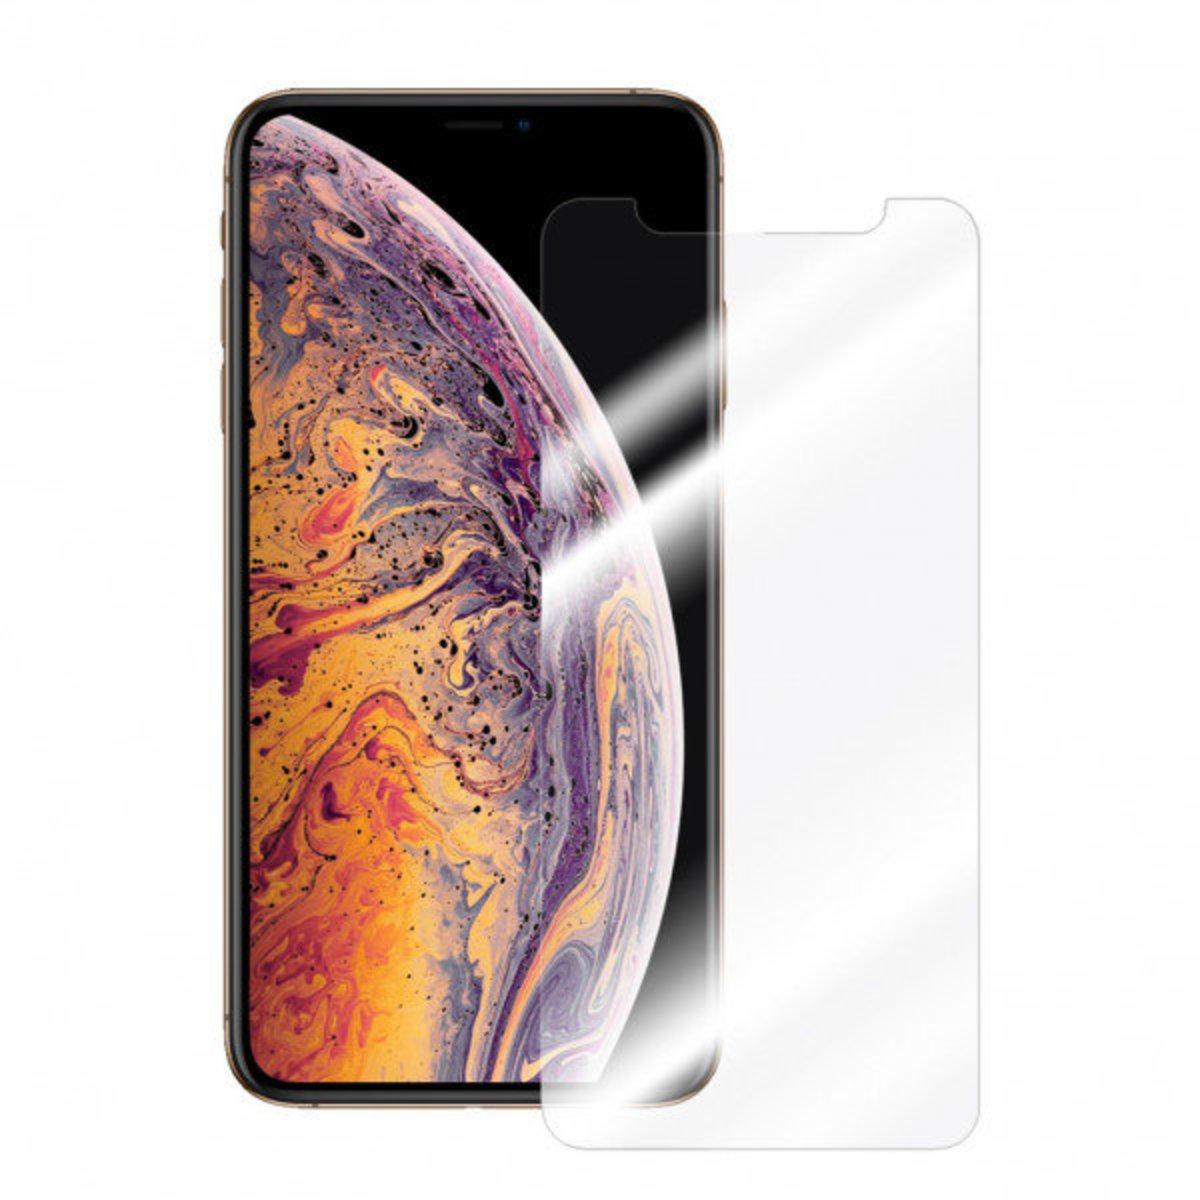 ToughTech Glass Protector for iPhone 11 Pro Max / XS Max